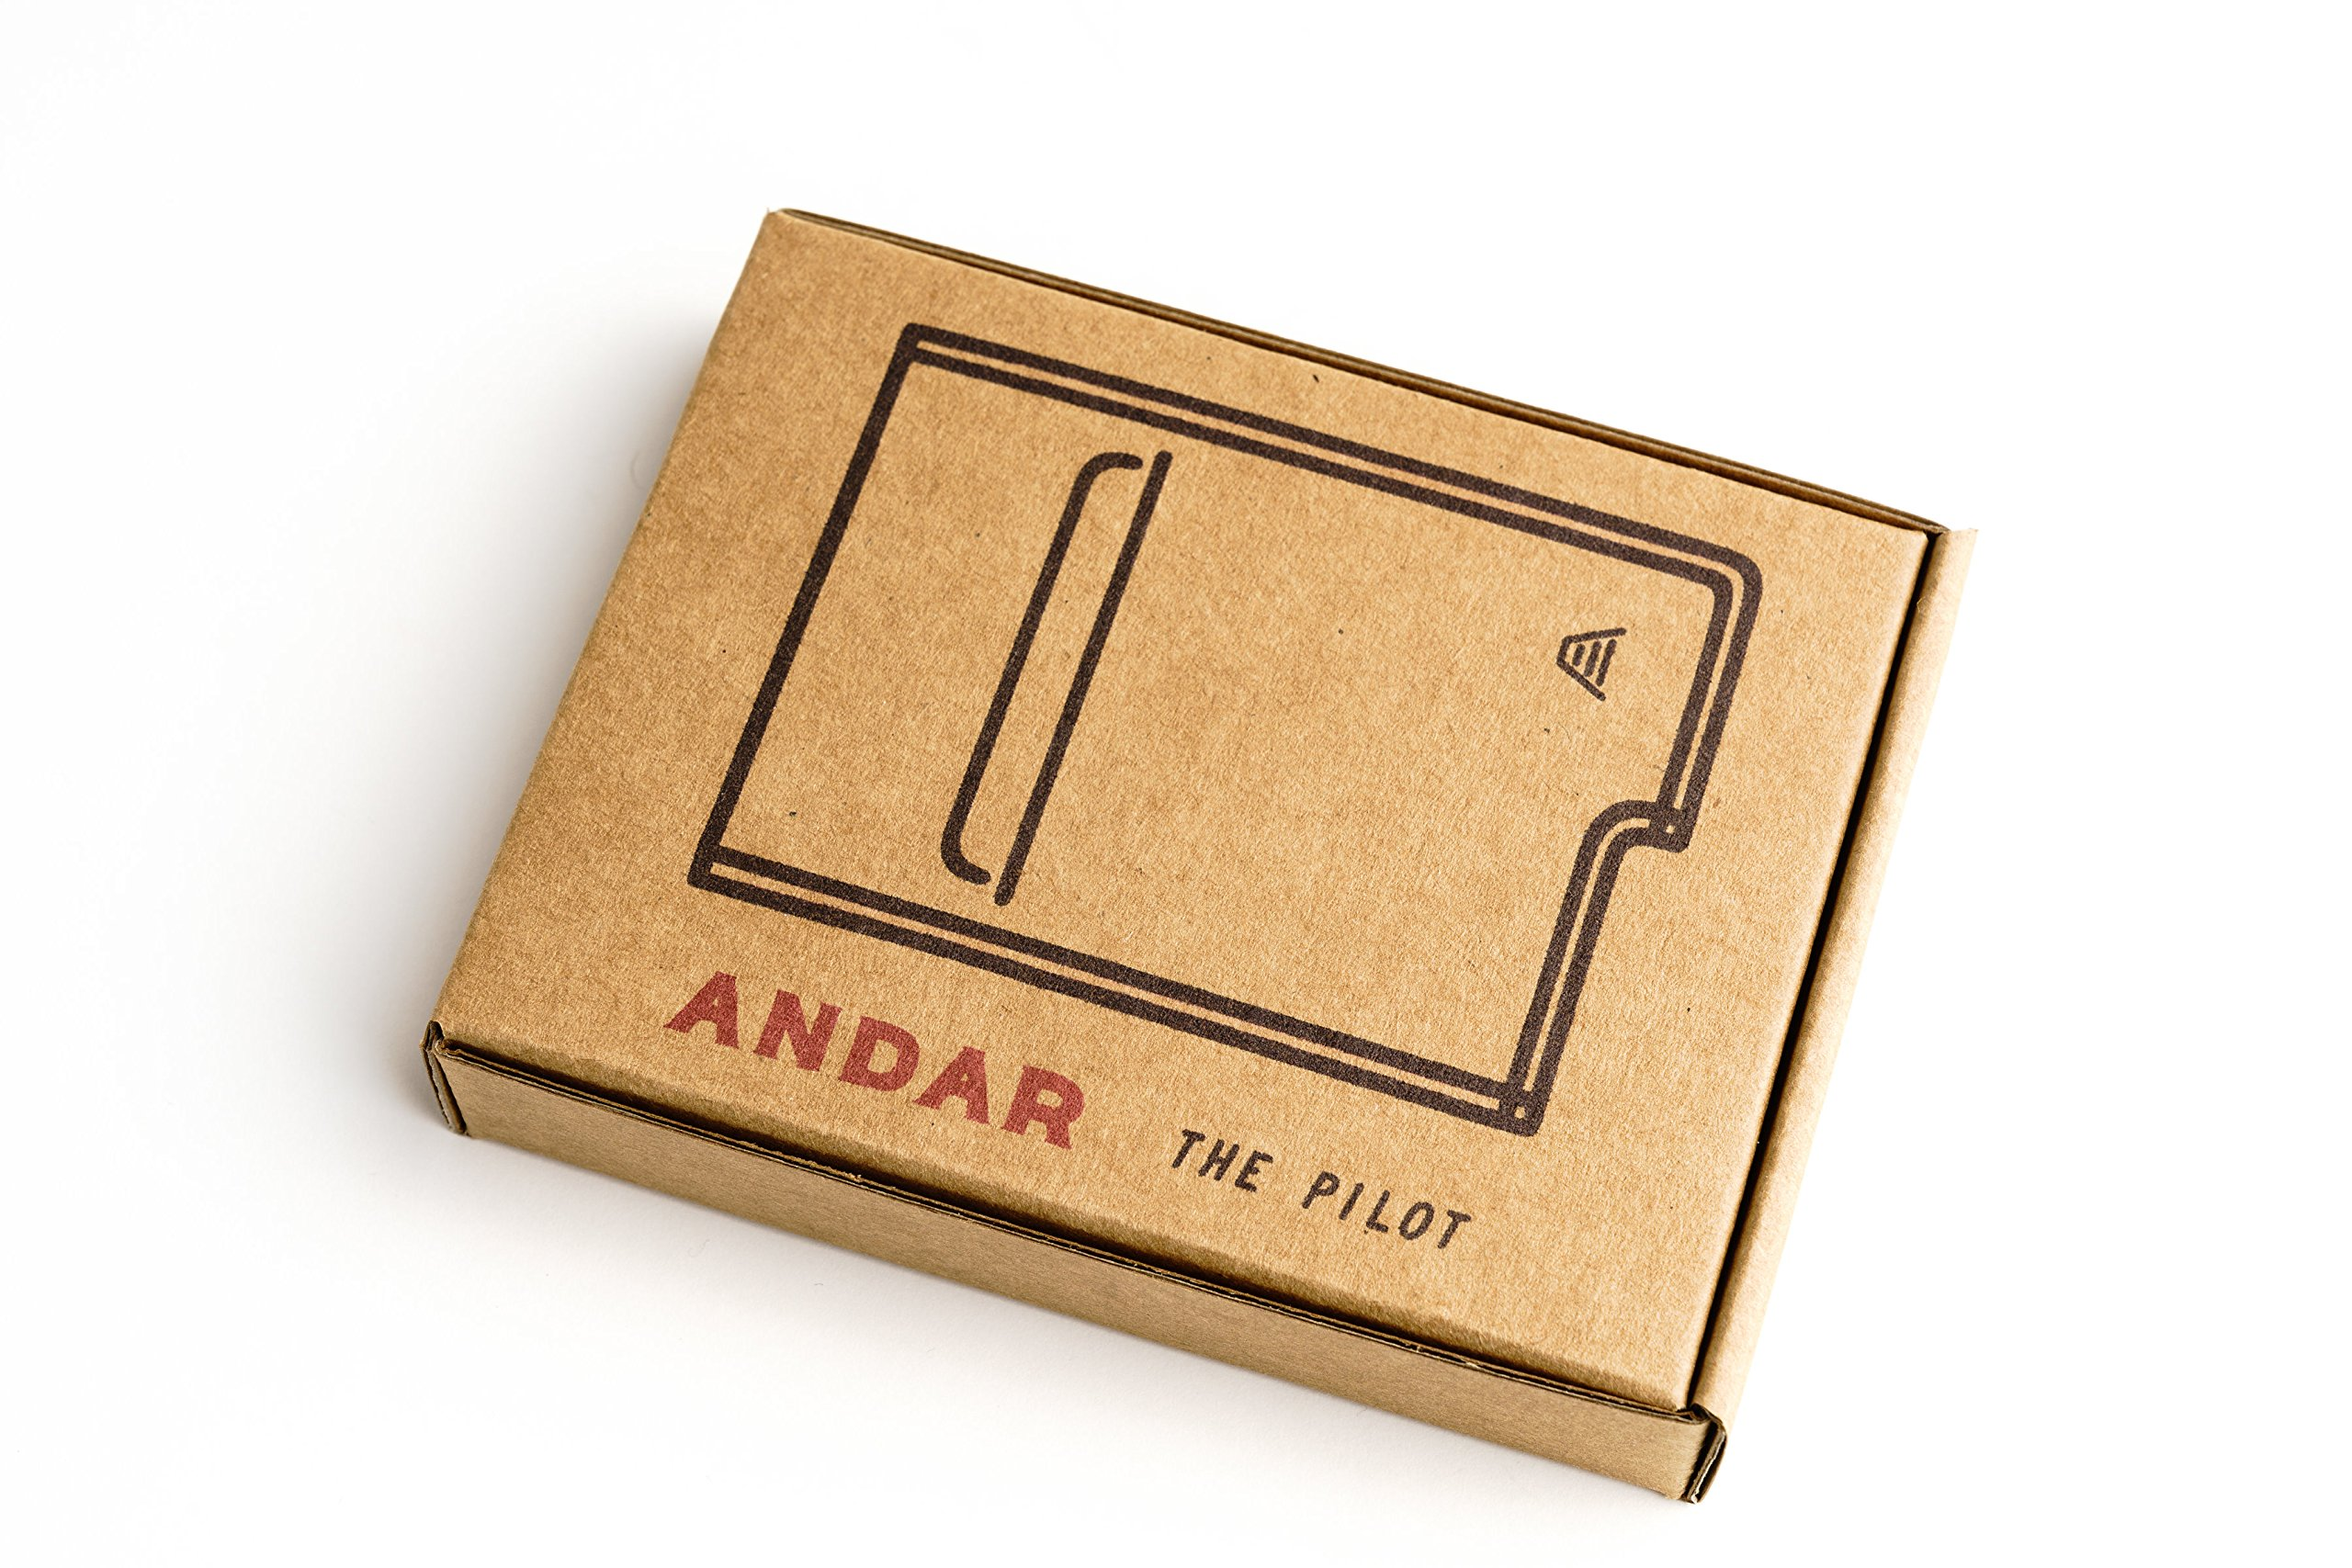 Andar Slim RFID Minimalist Card Case Full Grain Leather Wrapped - The Pilot (Saddle Brown) by Andar (Image #7)